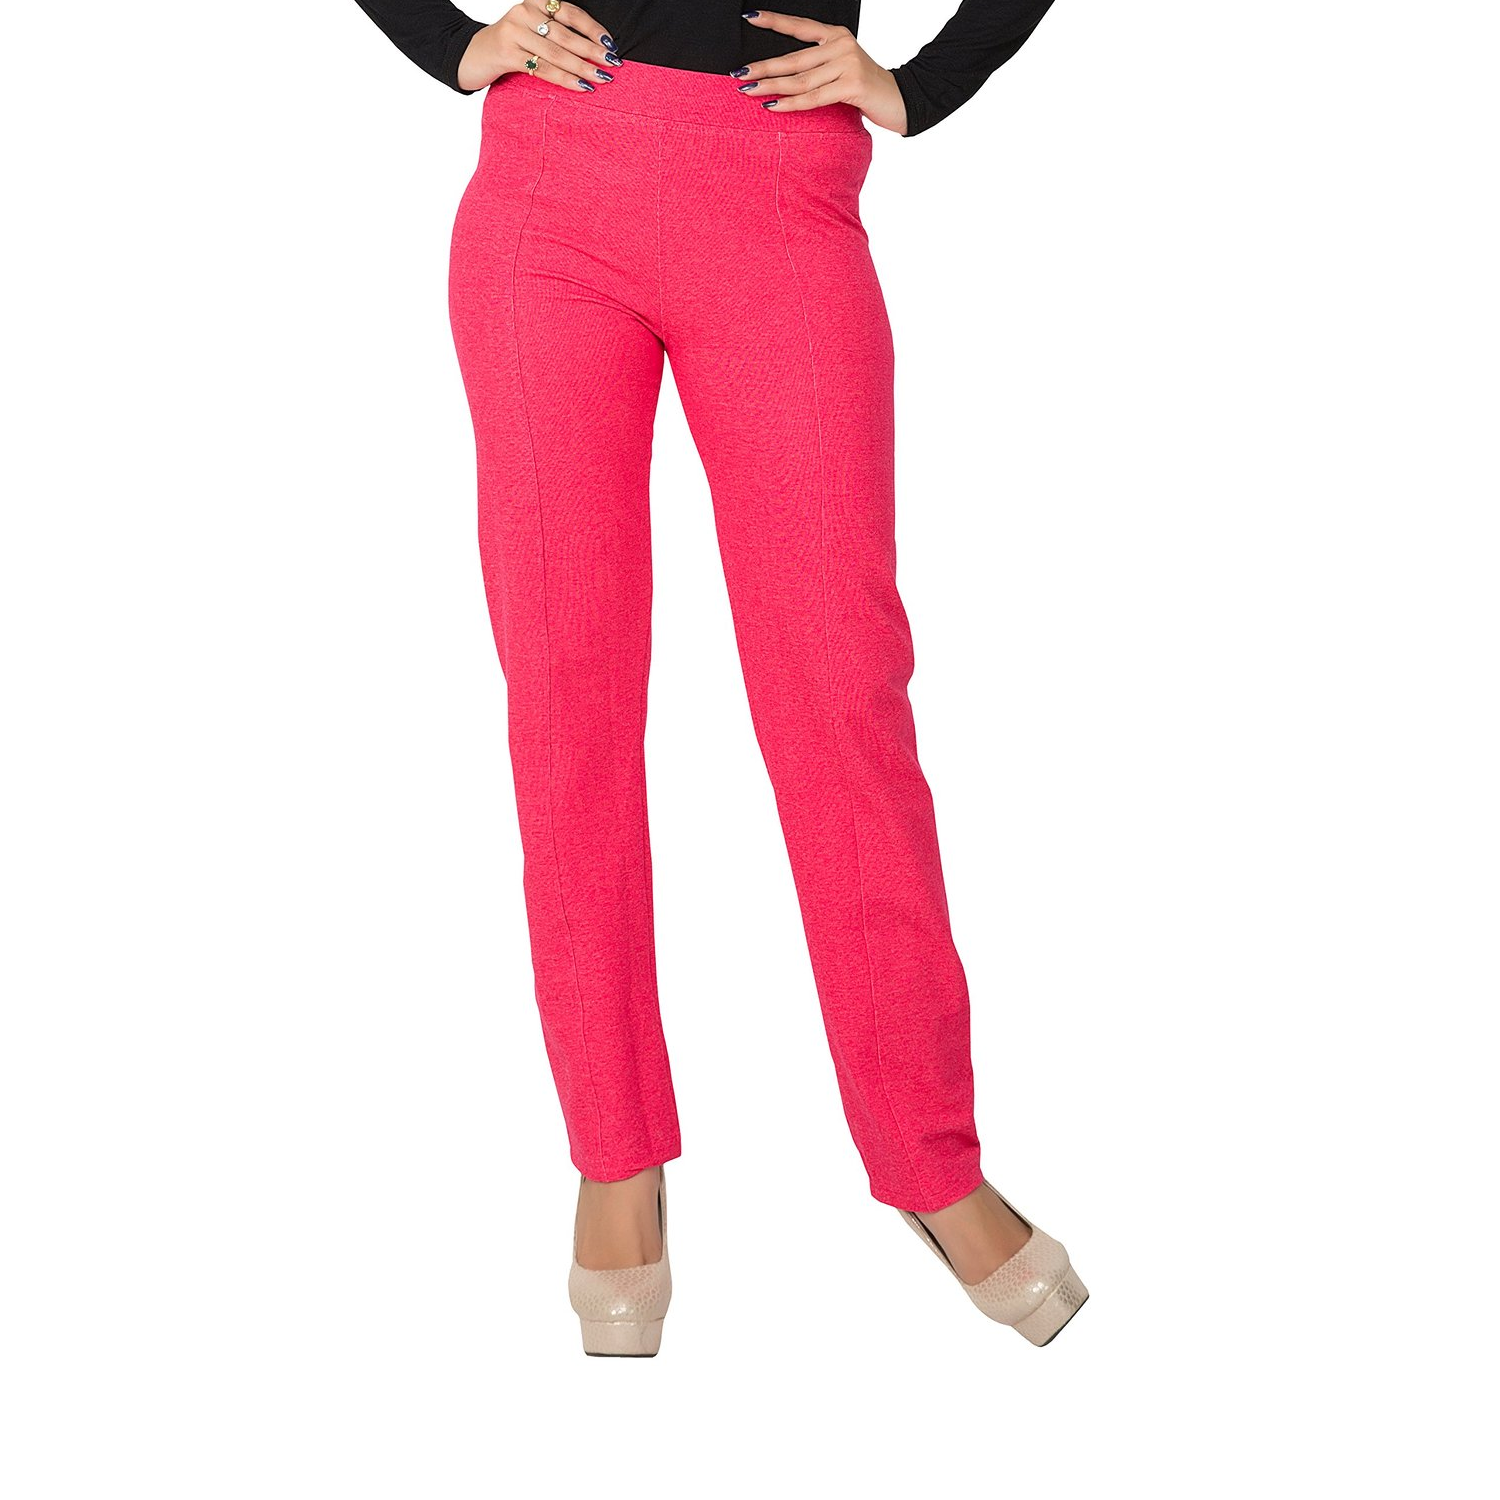 Hbhwear Womens Denim Treggings - Fuschia Pink